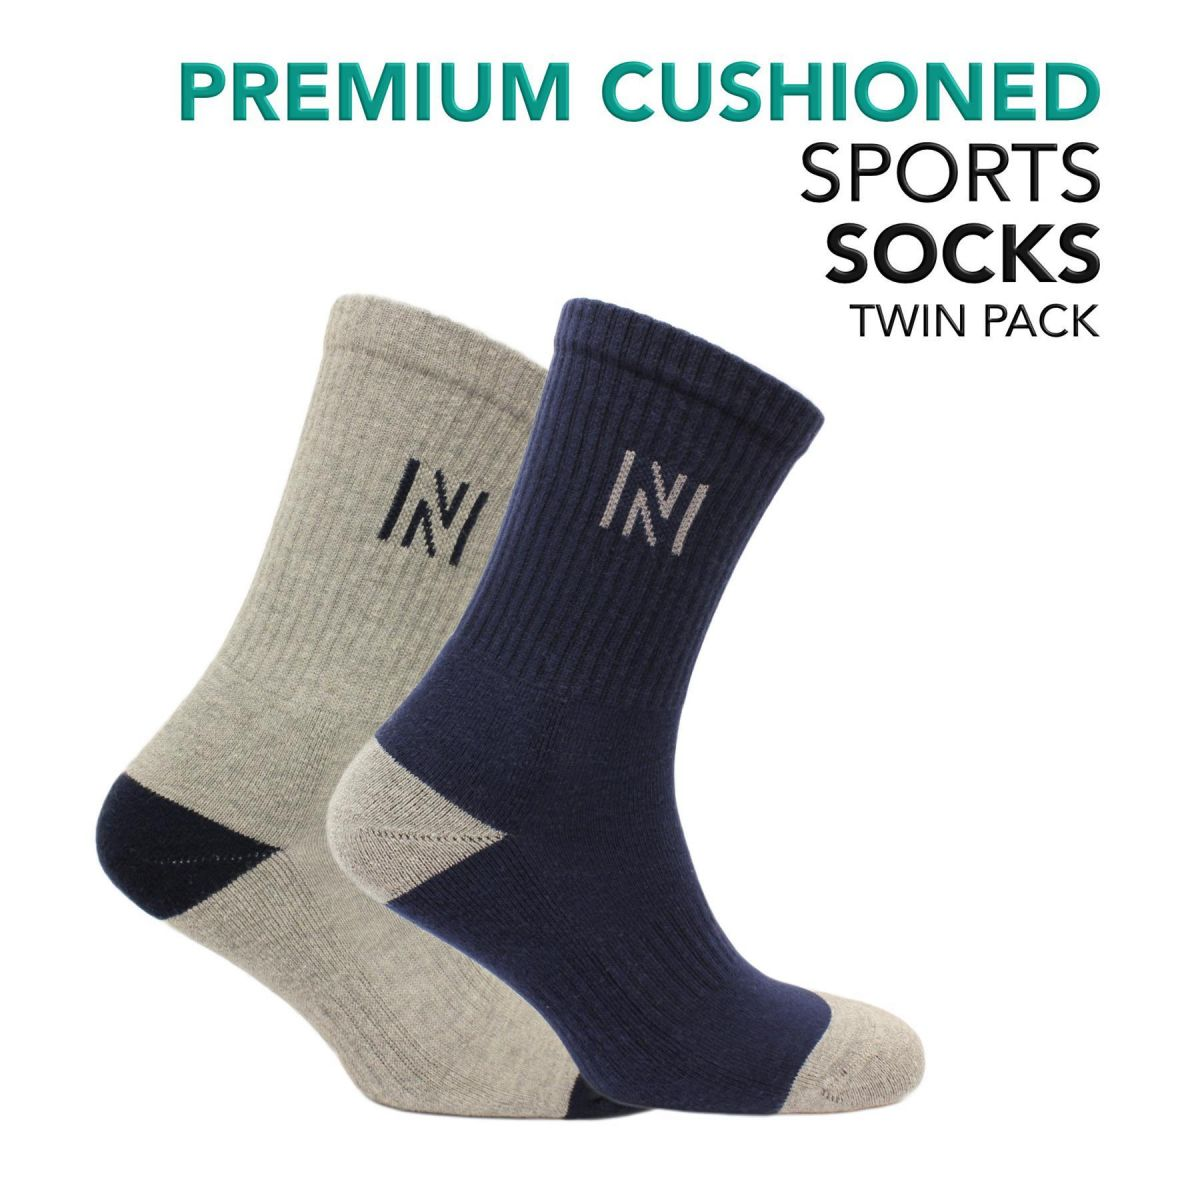 Cotton Sports Socks with Cushioning 2 Pair Pack - Barkley